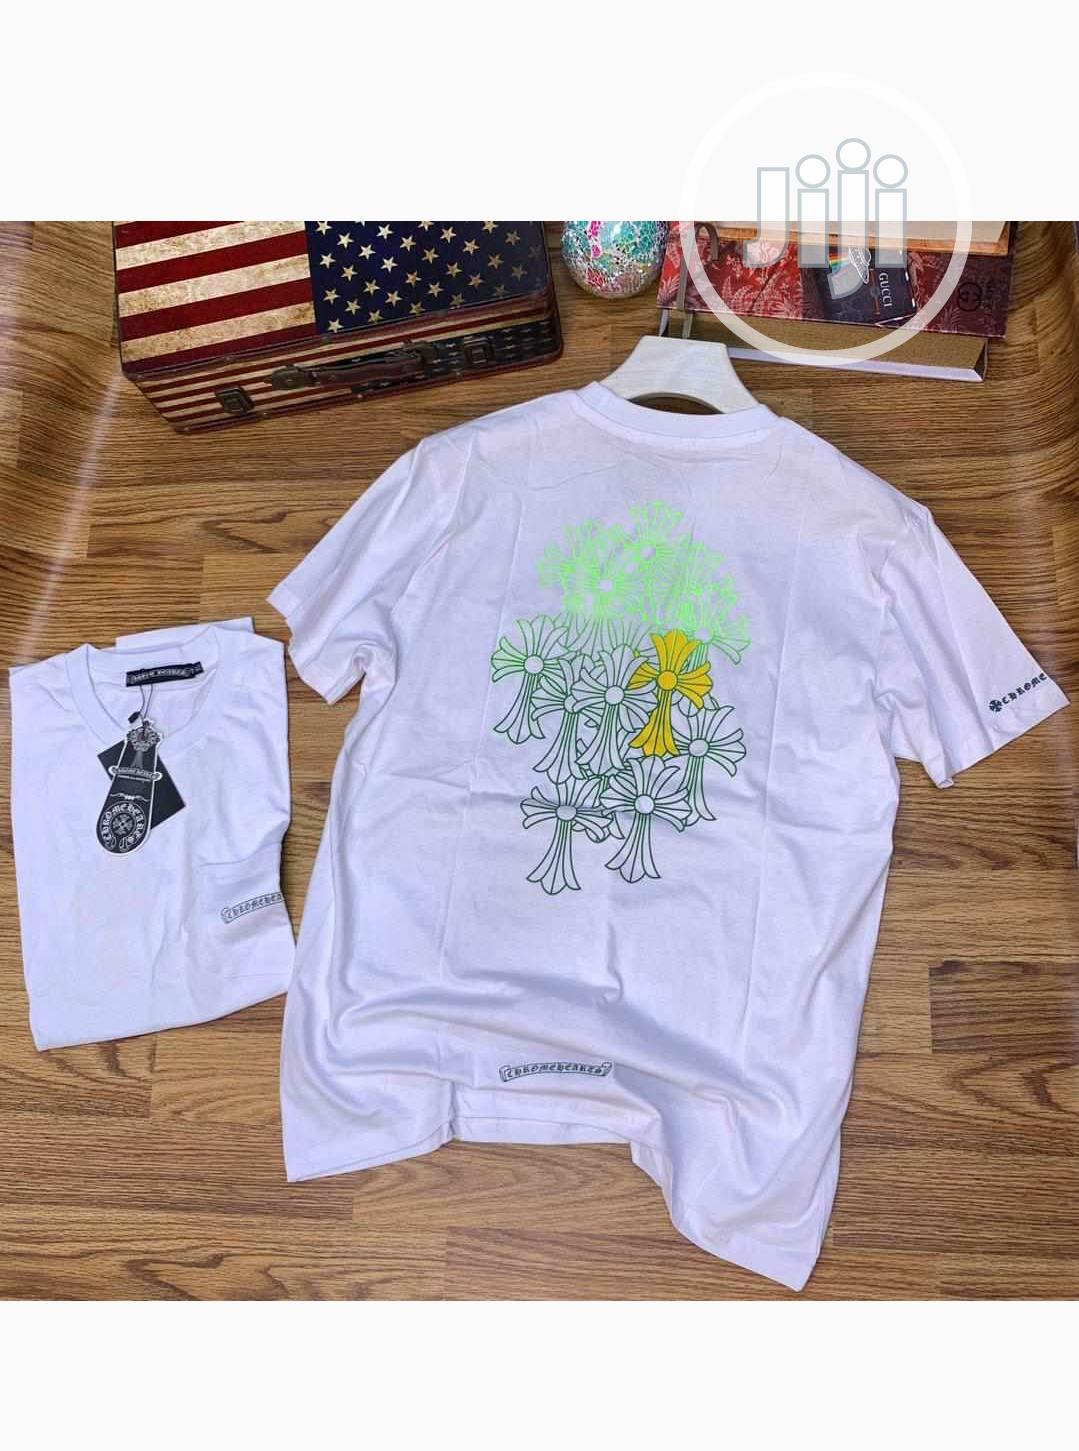 Chrome Heart T-Shirts | Clothing for sale in Gwarinpa, Abuja (FCT) State, Nigeria